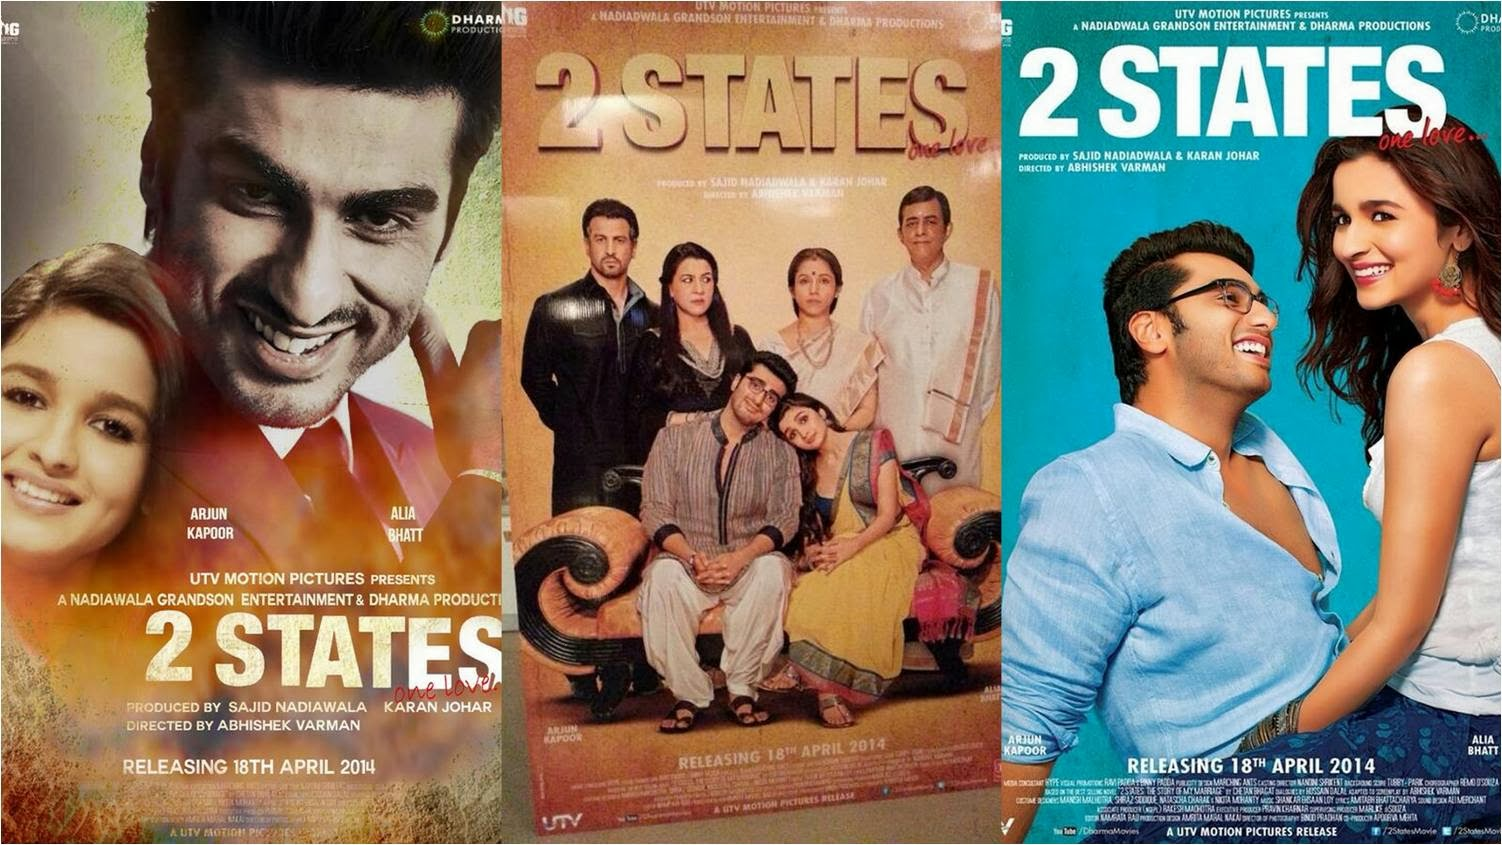 Official posters of 2 States One Love movie featuring Arjun Kapoor and Alia Bhatt